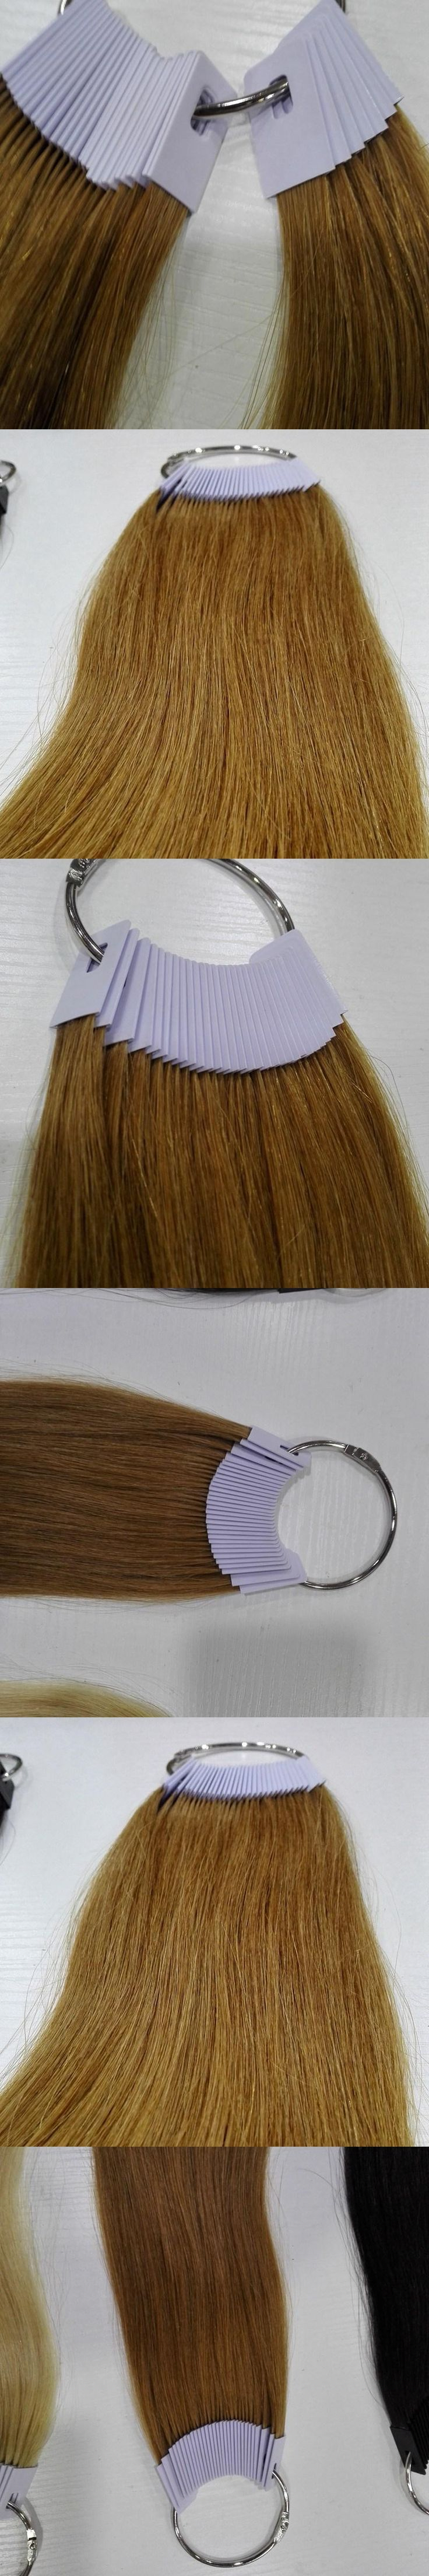 6inch human hair color ring for salon hair  color chart light brown color can change any color